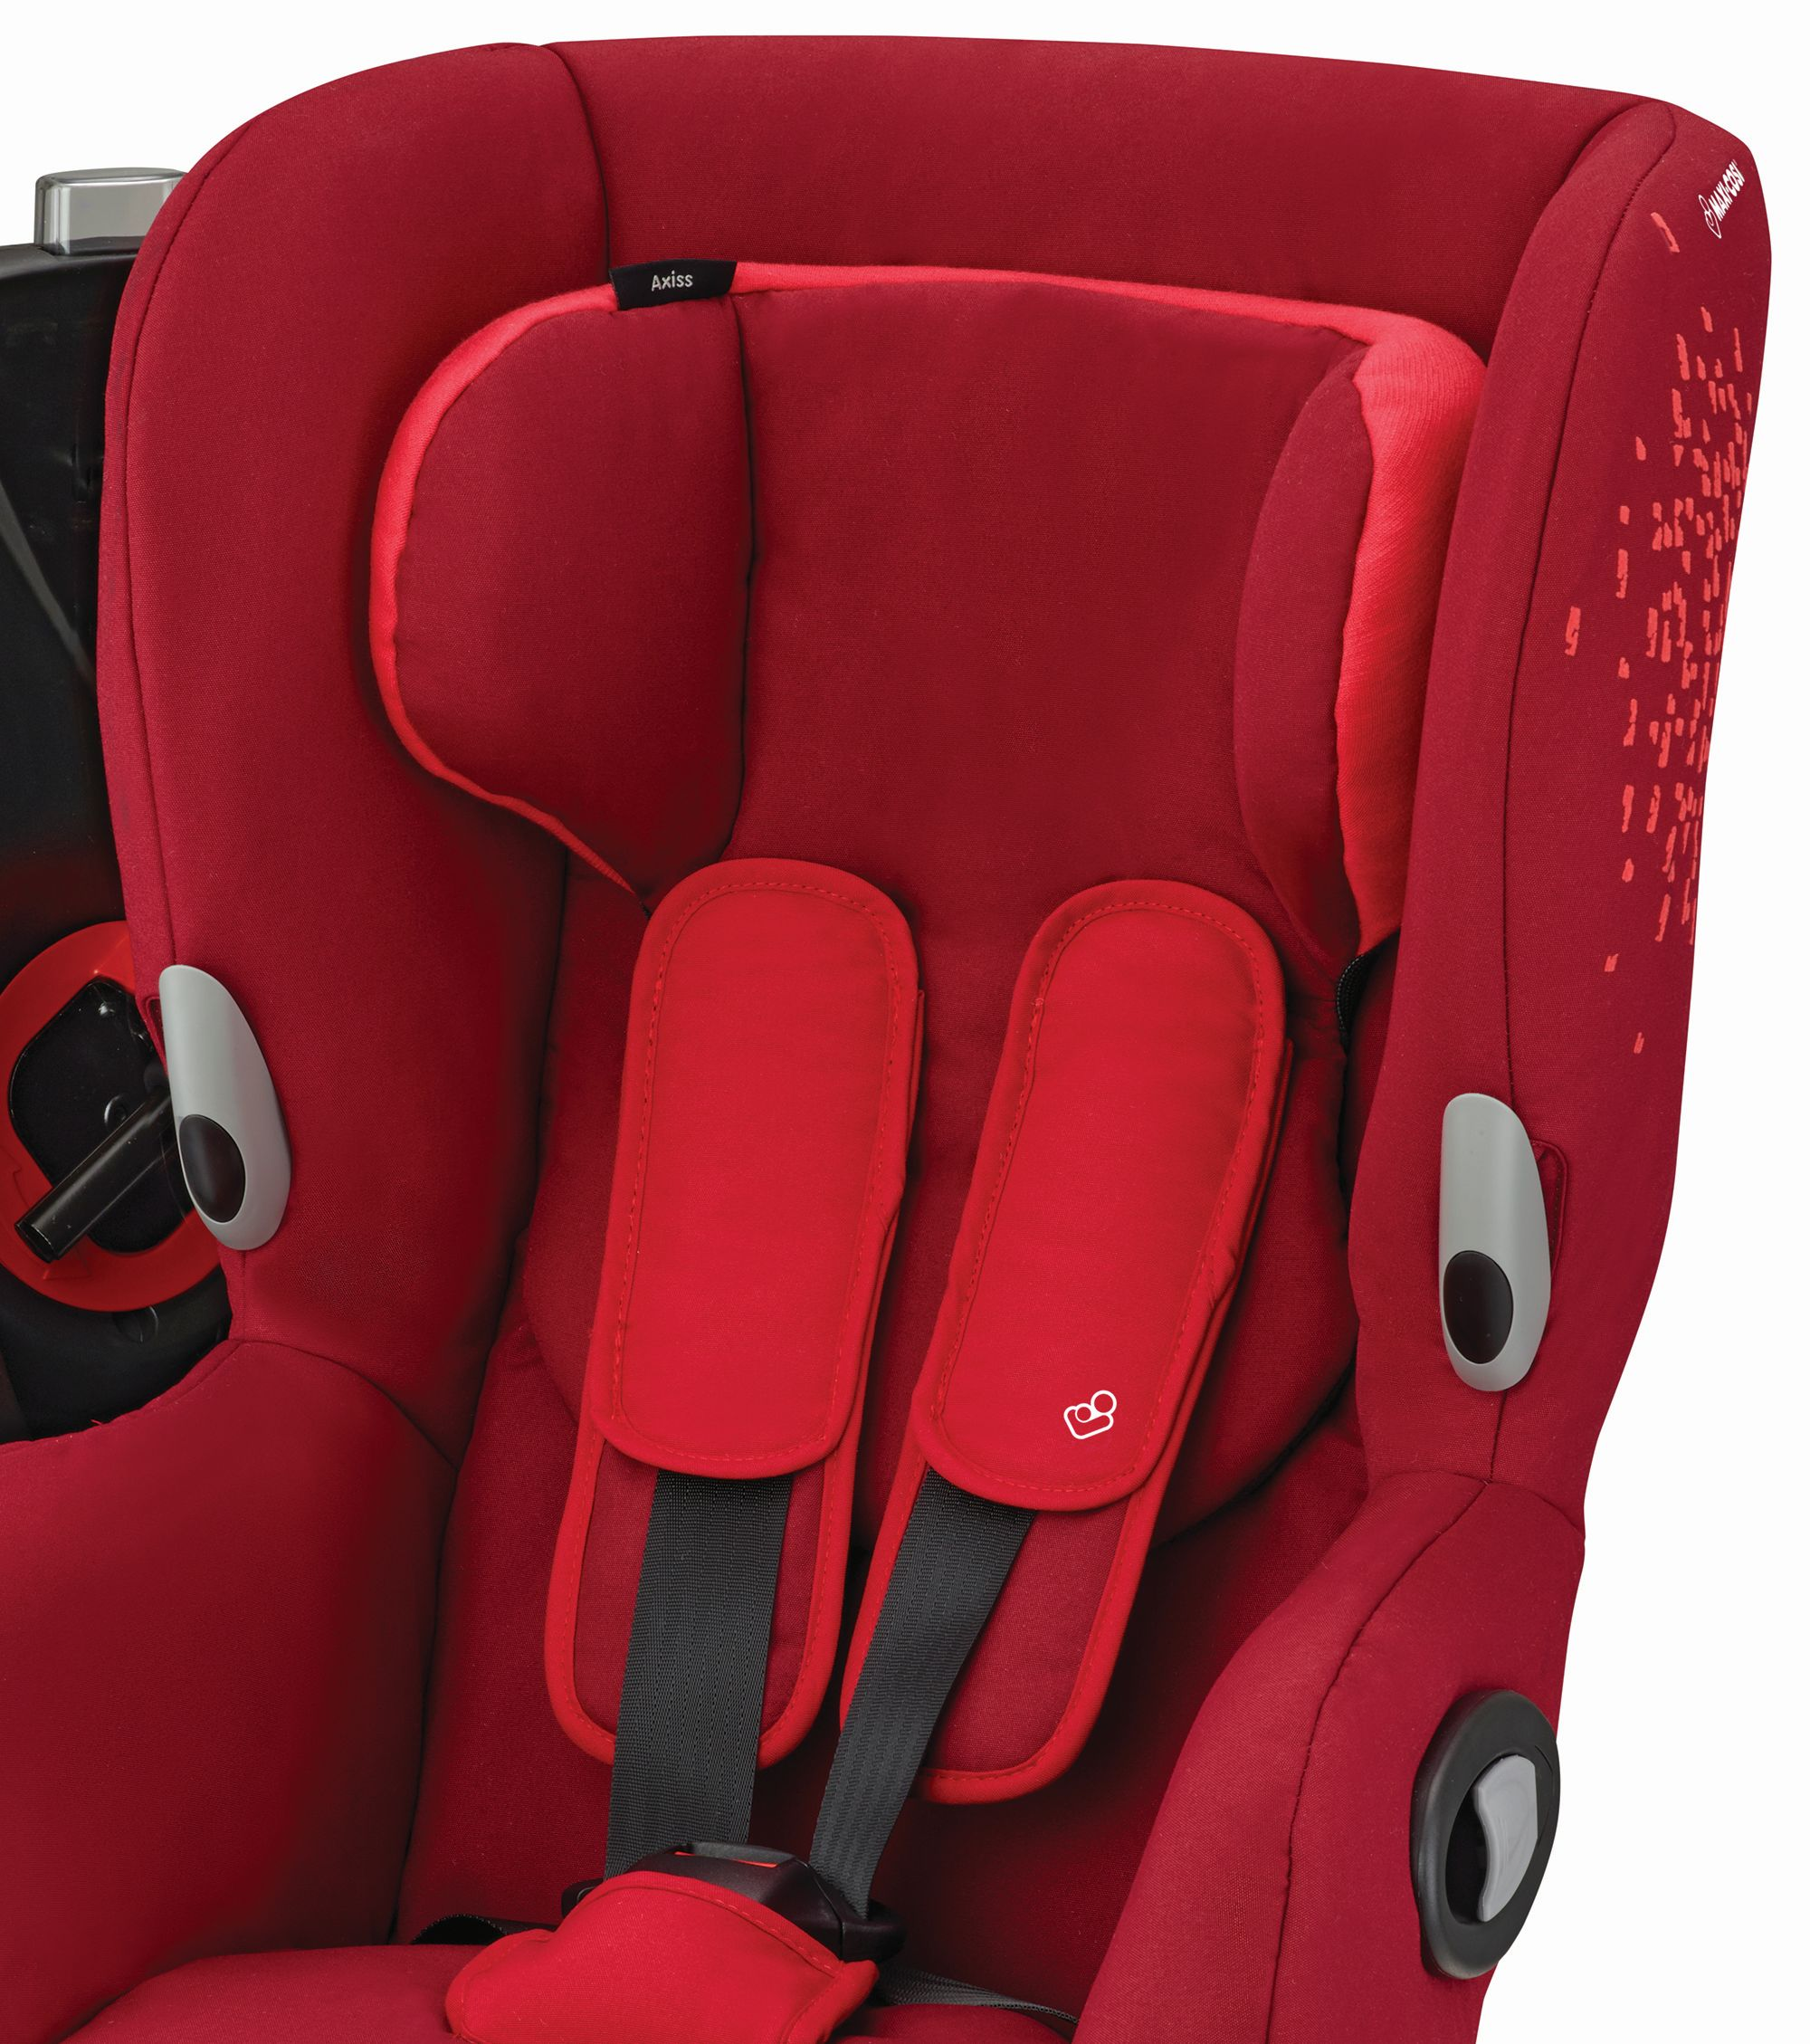 maxi cosi child car seat axiss 2018 vivid red buy at kidsroom car seats. Black Bedroom Furniture Sets. Home Design Ideas